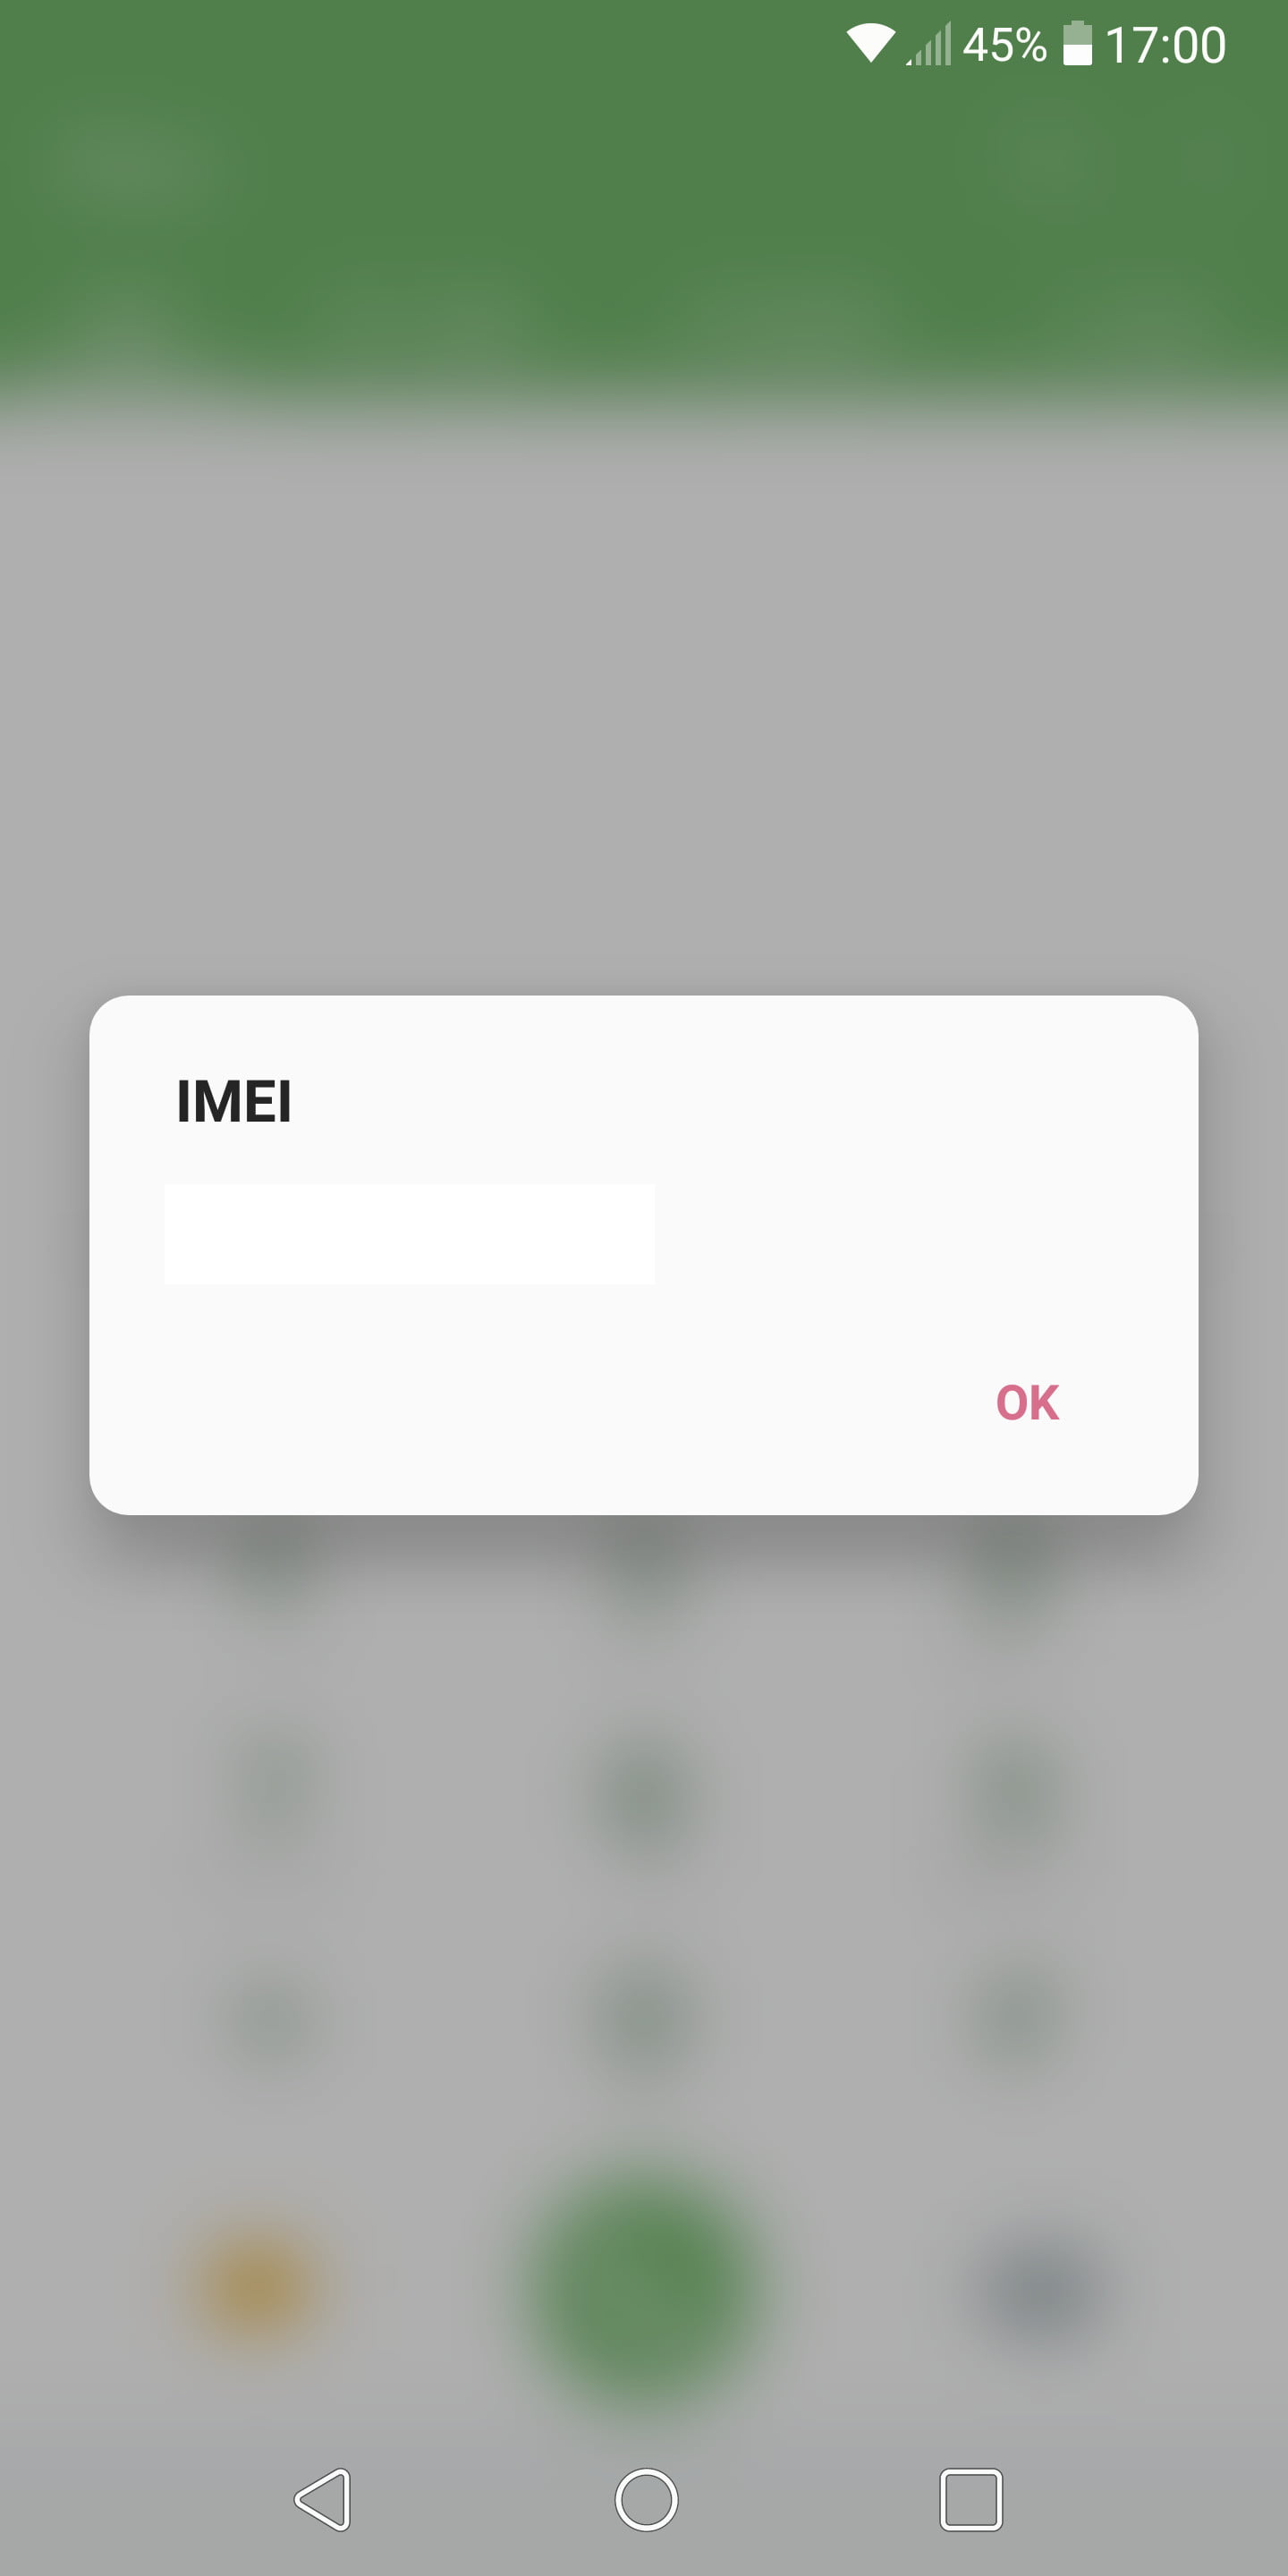 How to Check Your IMEI Number Easily On Any Phone | Digital Trends